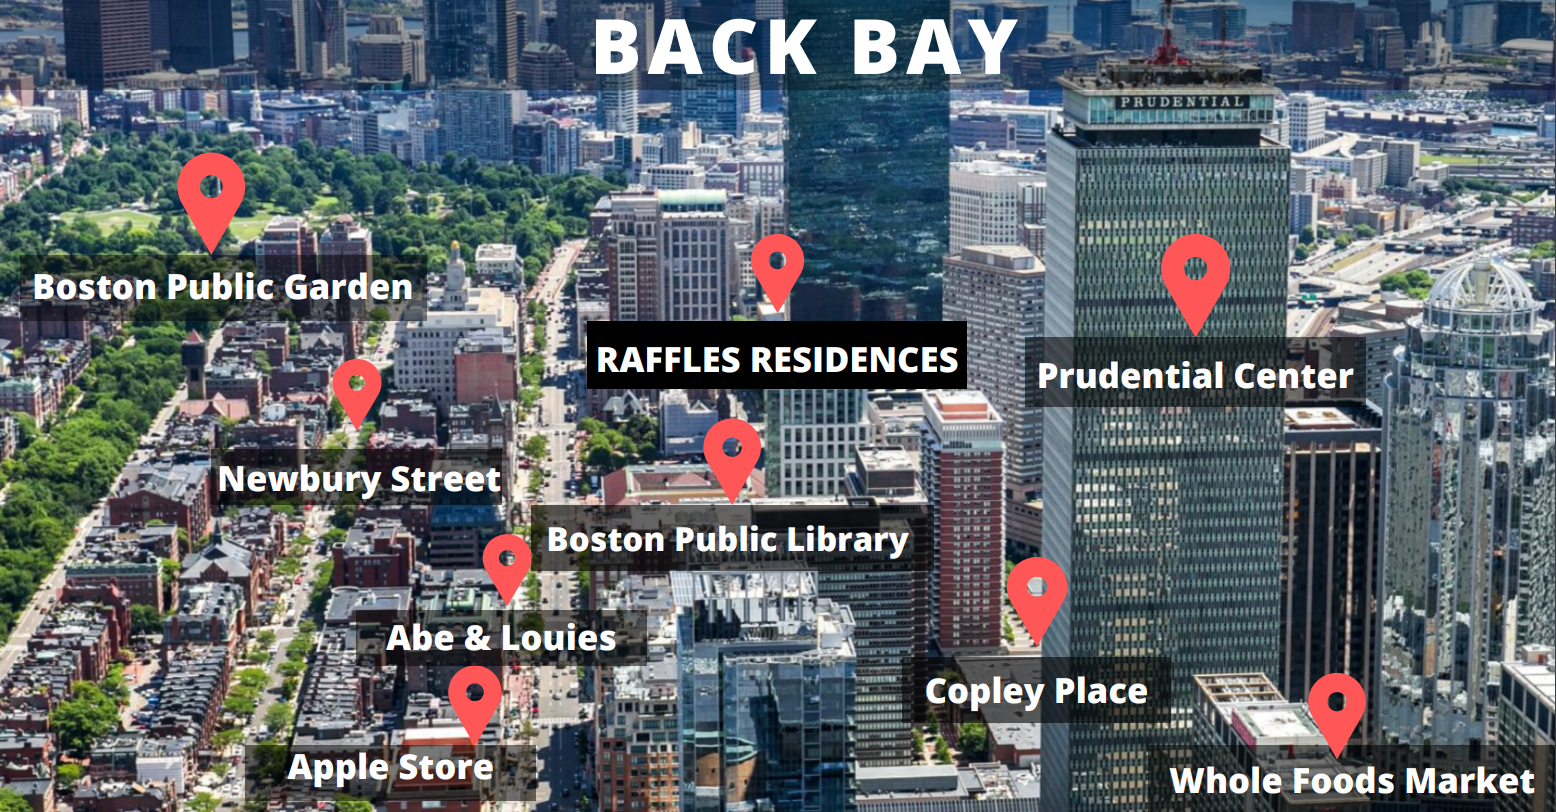 Map of Back Bay Amenities